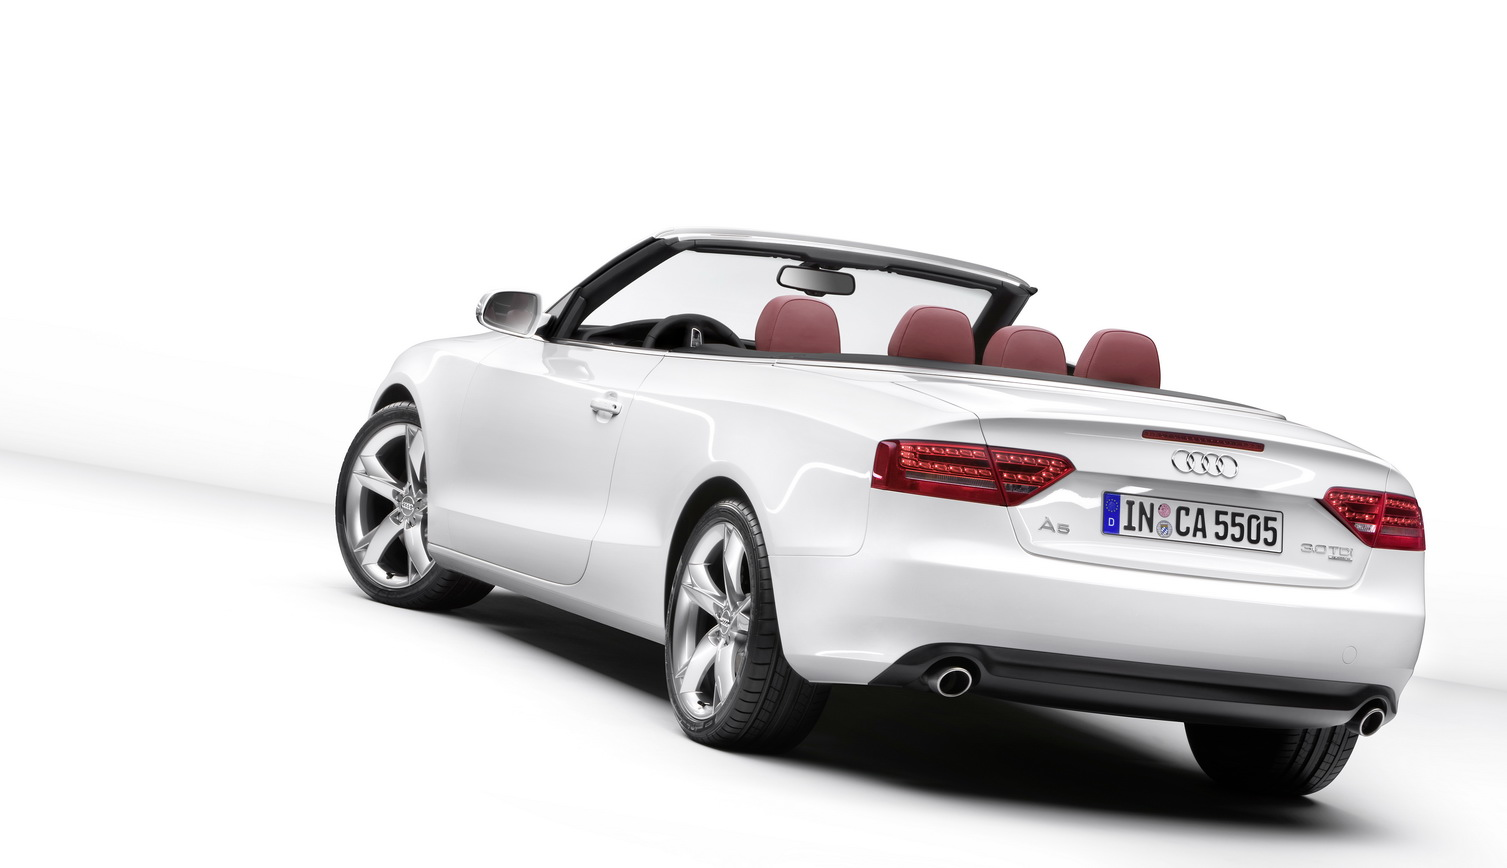 new 2010 audi a5 s5 cabriolet revealed details and photo. Black Bedroom Furniture Sets. Home Design Ideas